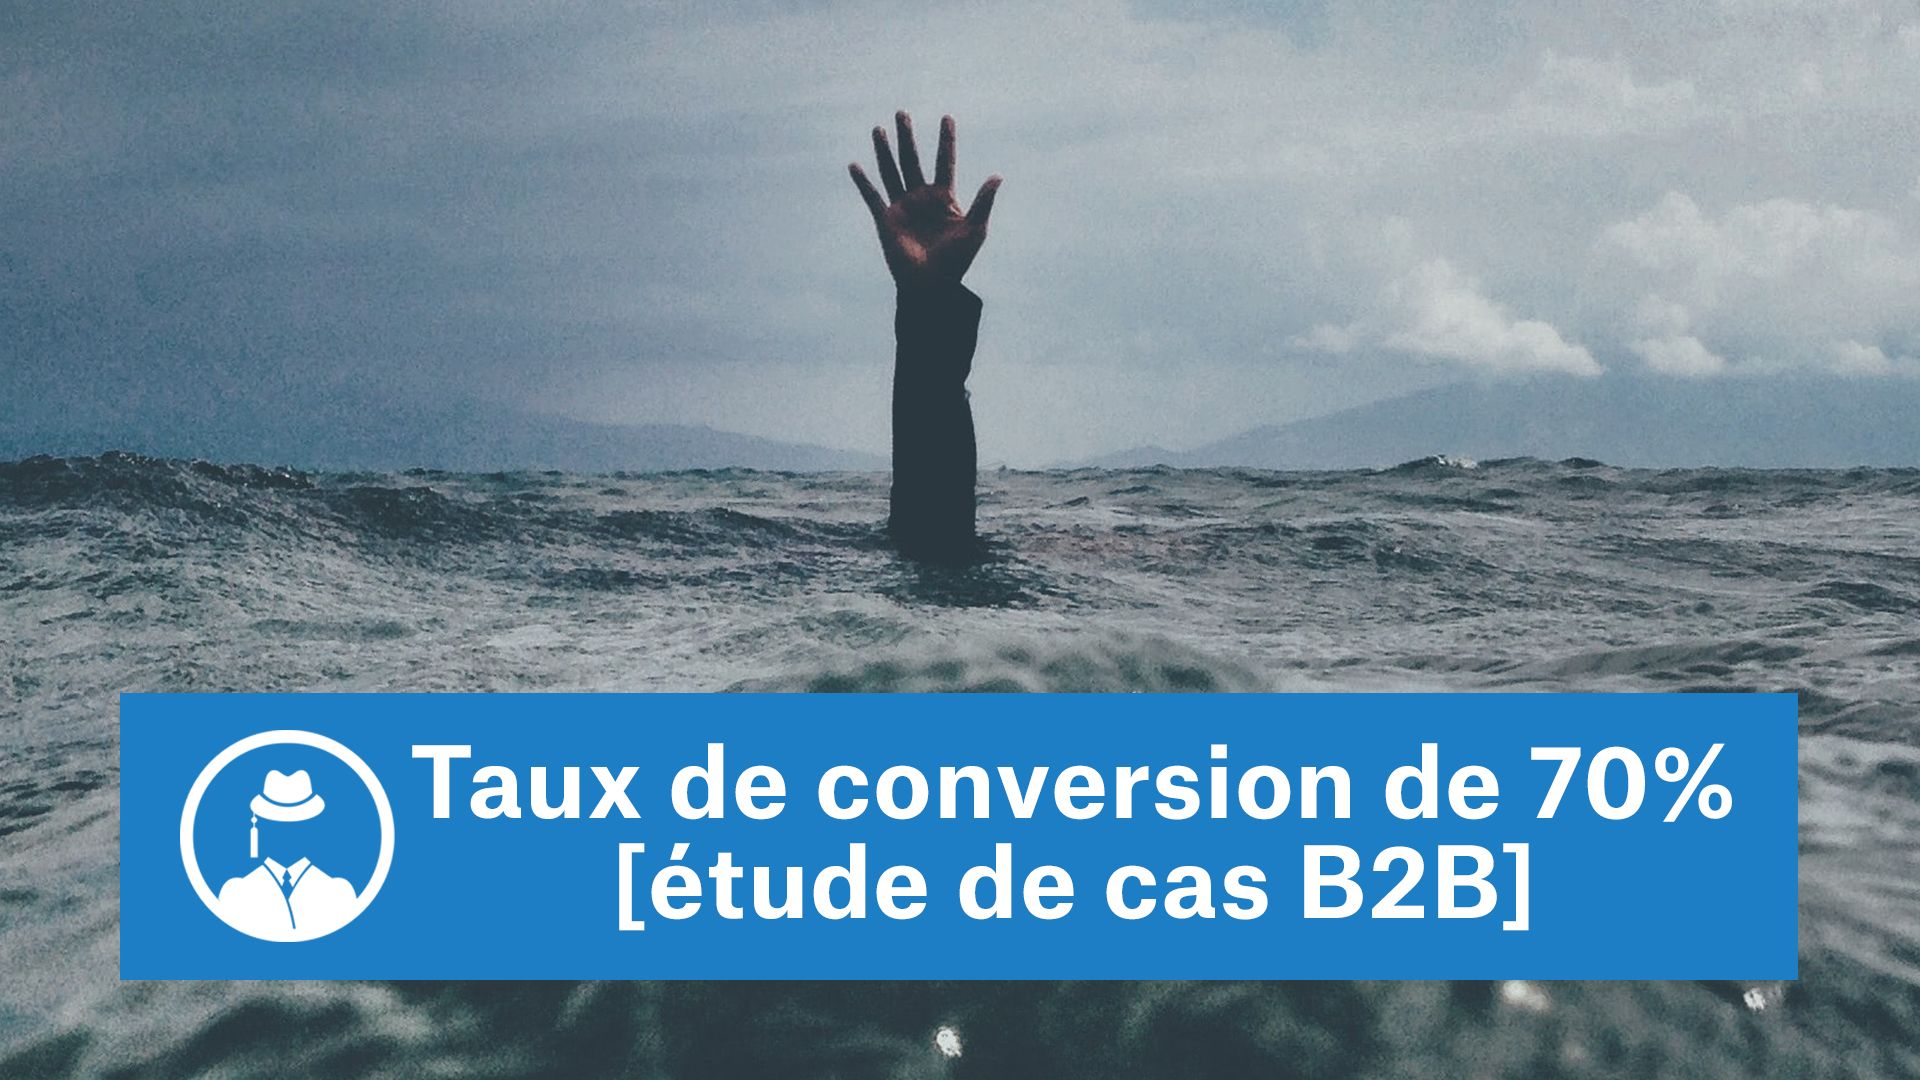 Taux de conversion de 70% [étude de cas B2B] #GrowthHacking #WebMarketing #FormationGrowthHacking #CentreDeFormationFrance #TunnelAARRR #AARRR #SocialMedia #CommunityManagement #SEO #MarketingDigital #SiteWeb